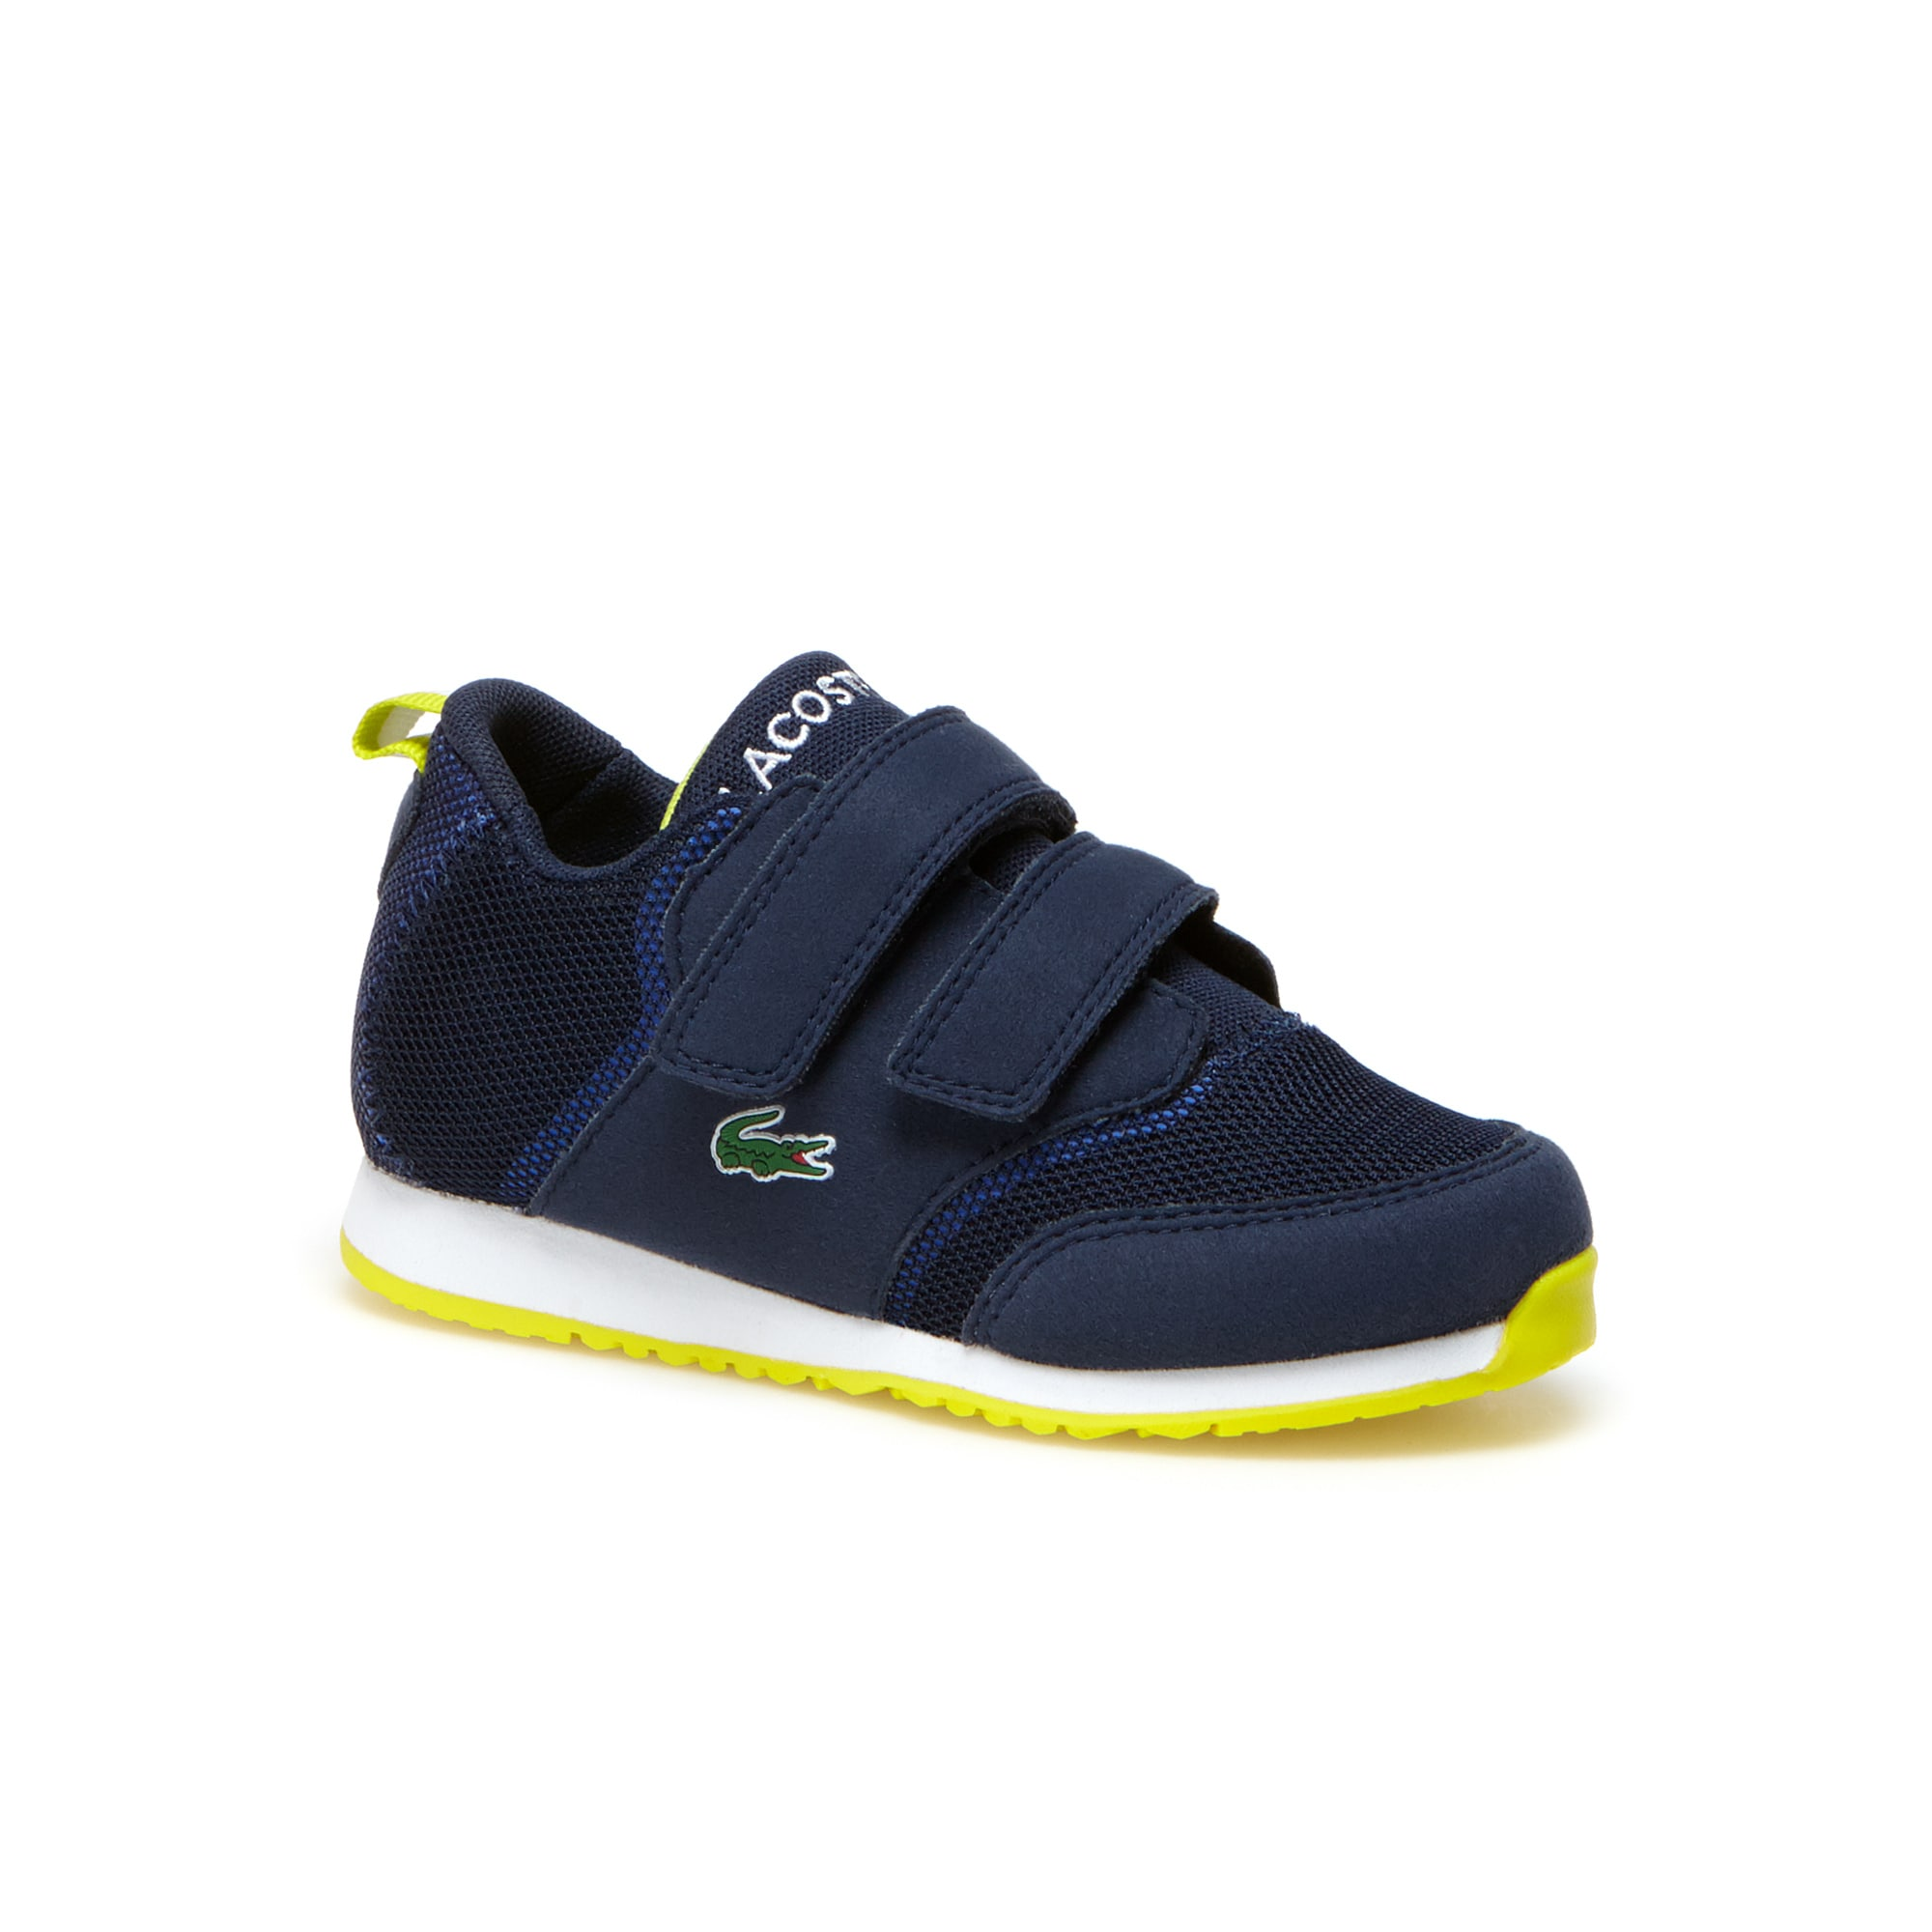 Kids' L.IGHT Breathable Canvas Double Hook and loop Strap Trainers